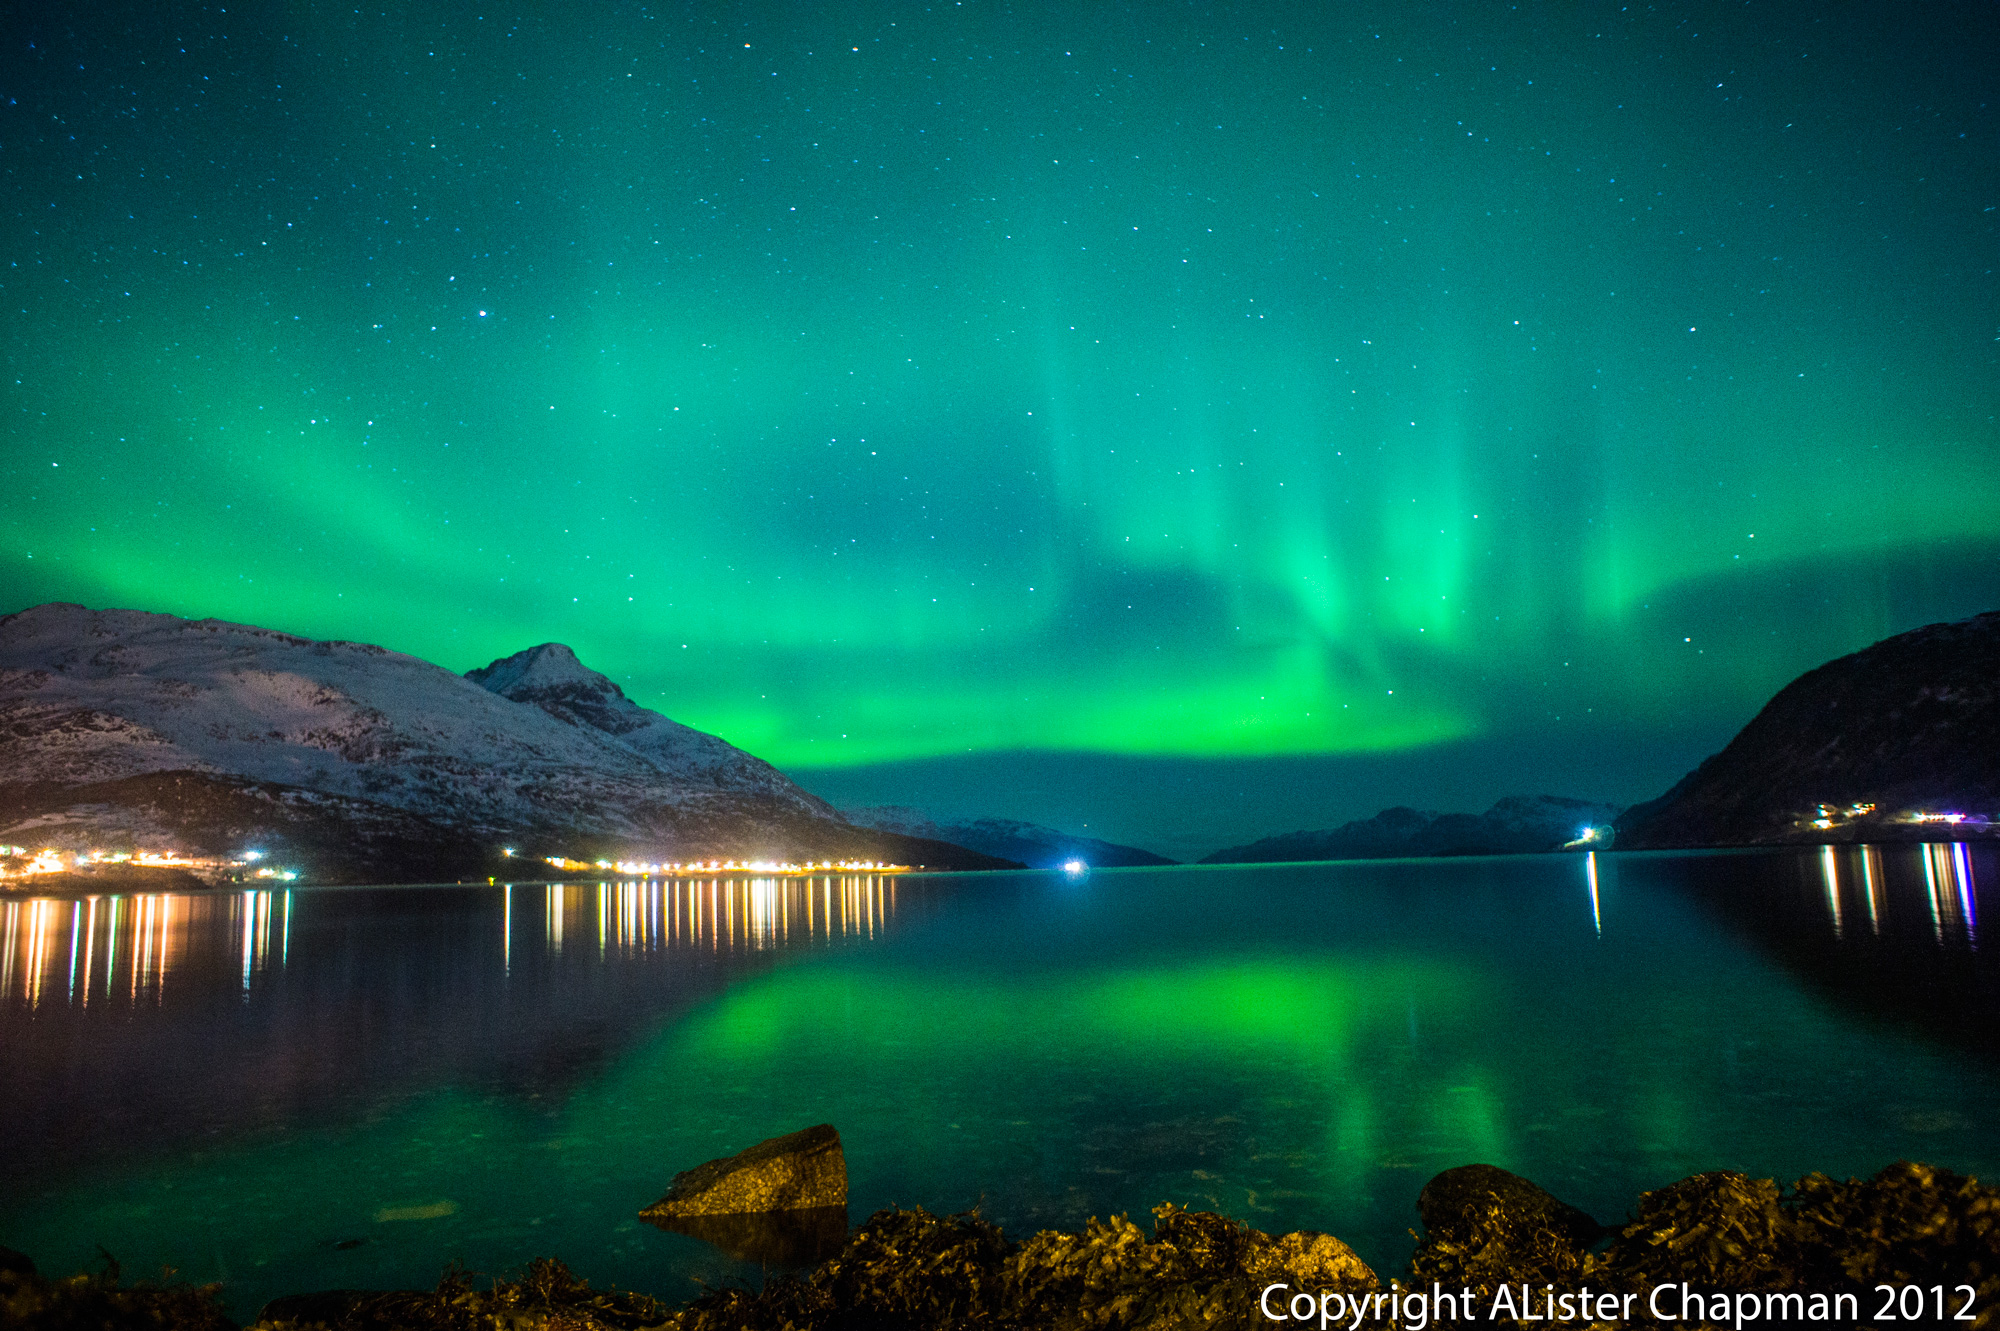 The Northern Lights reflected from the cold waters of a Fjord near Tromso.